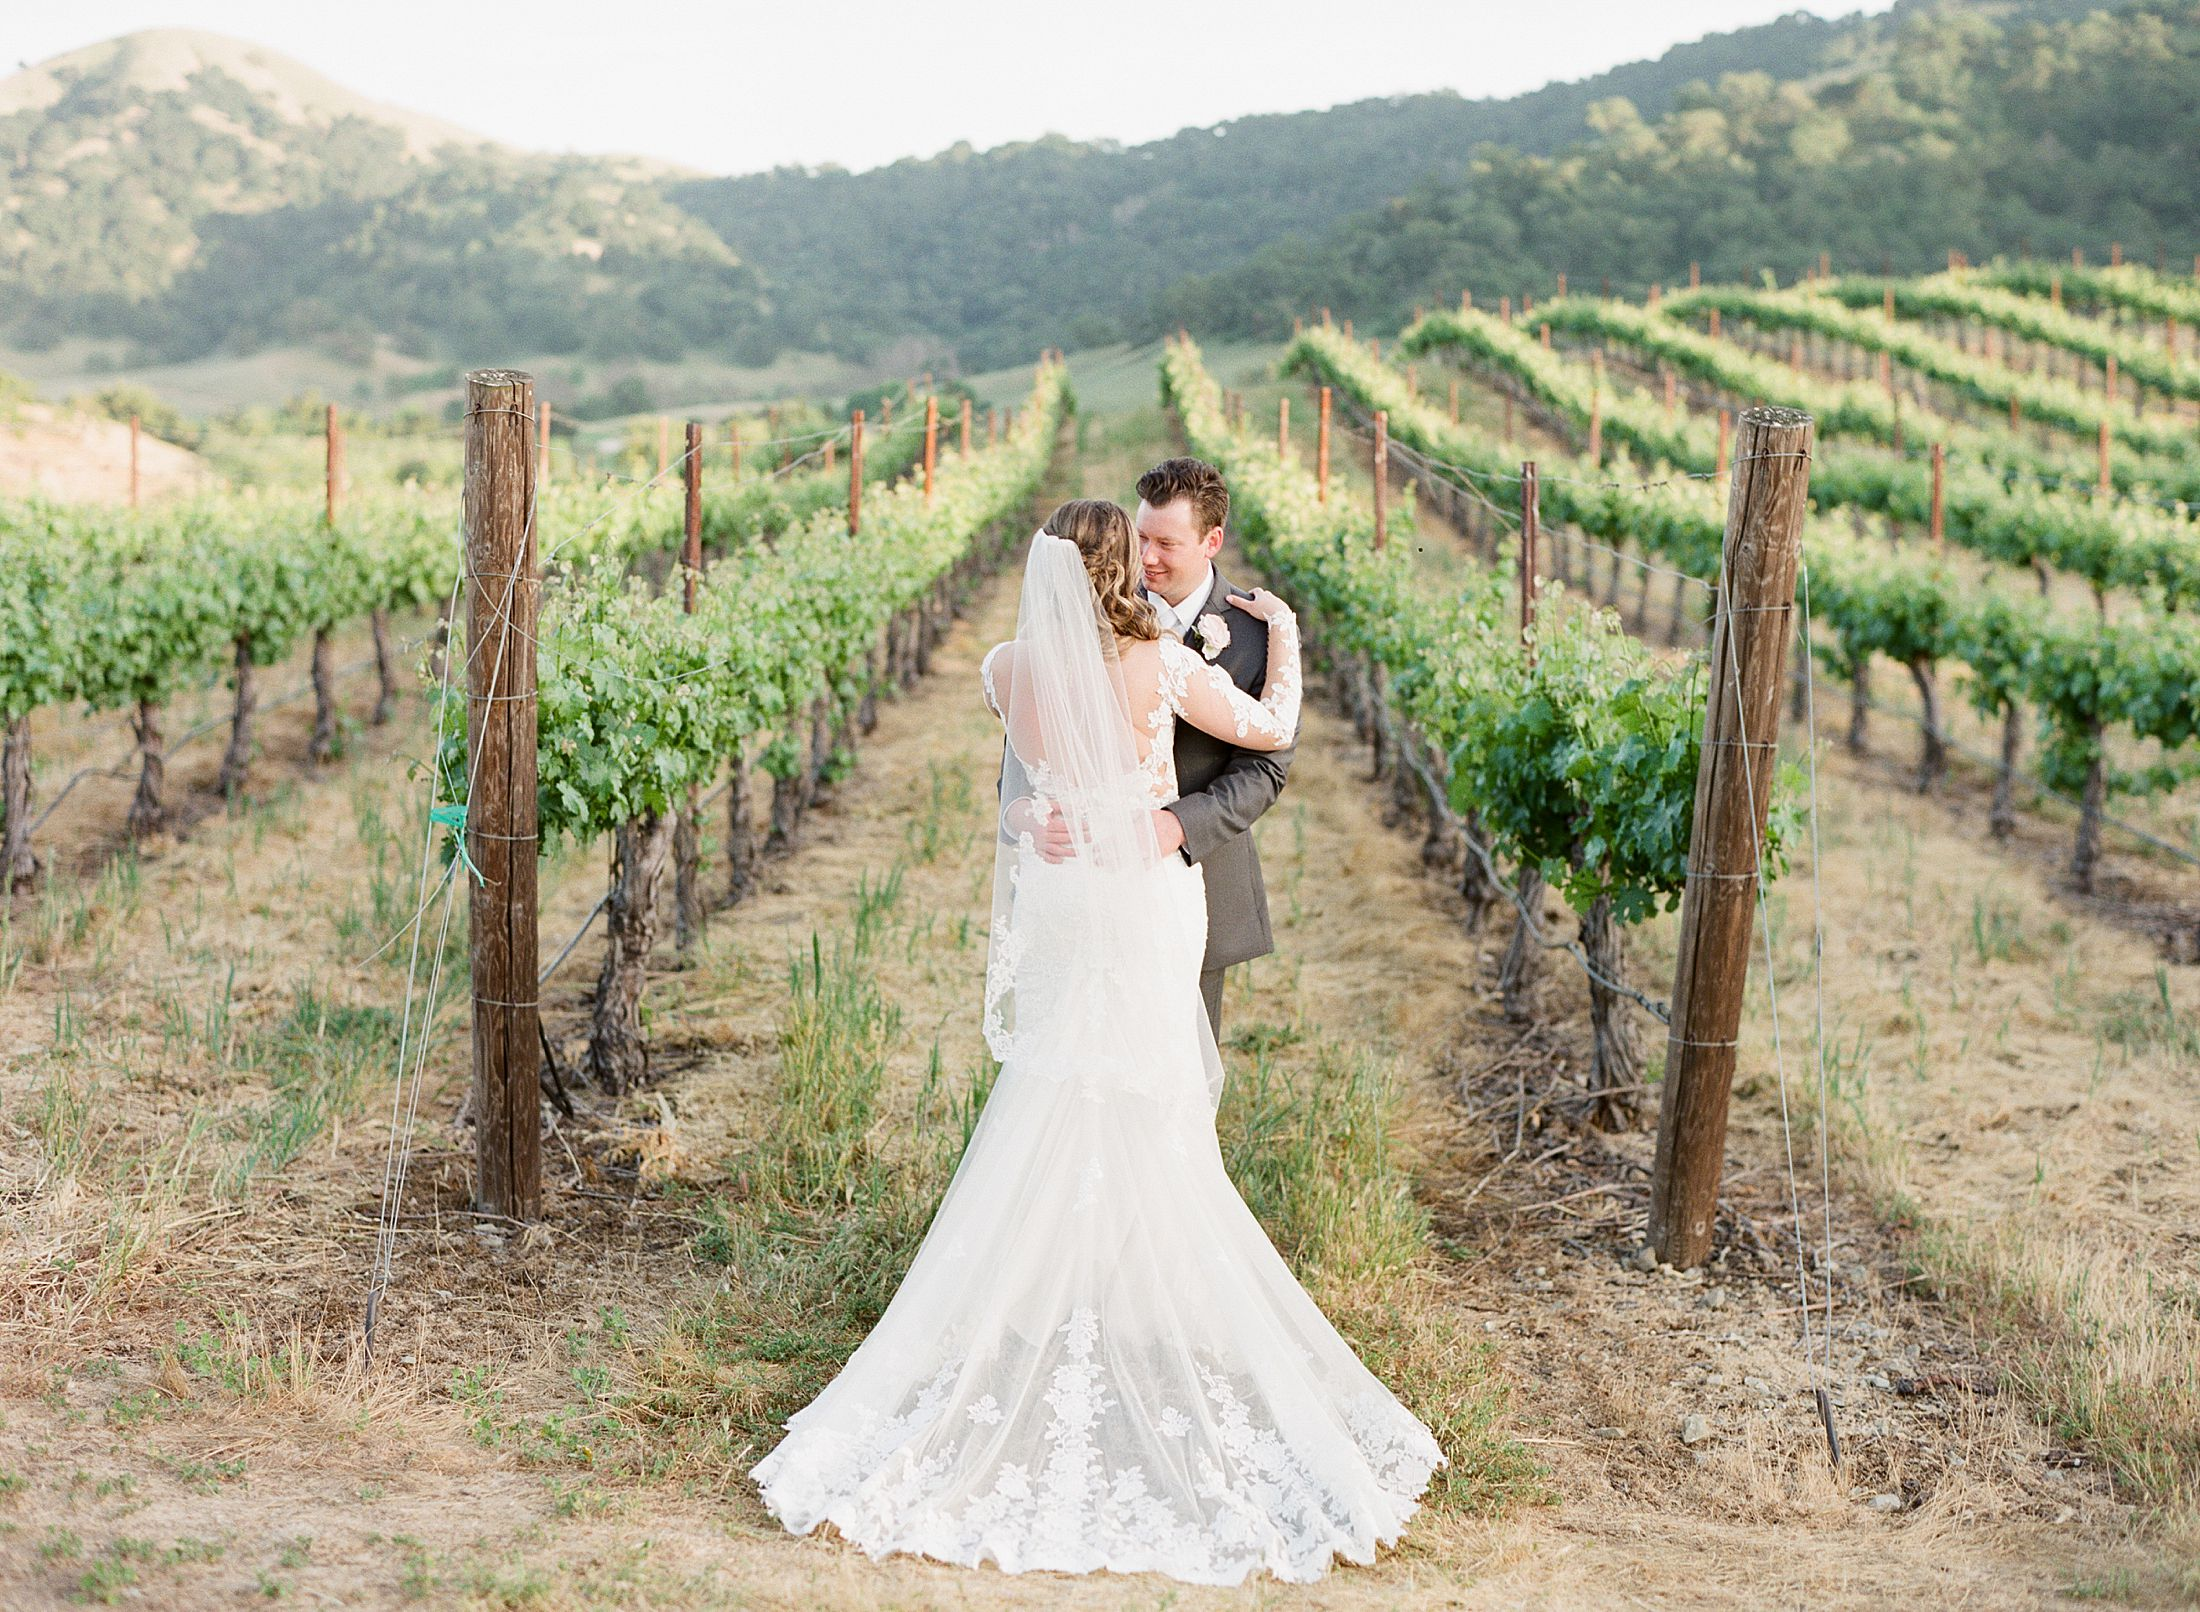 Clos LaChance Winery Wedding - Ashley Baumgartner - Kat & Kurt - Morgan Hill Wedding - Winery Wedding - Bay Area Photographer - Sacramento Wedding Photographer_0058.jpg